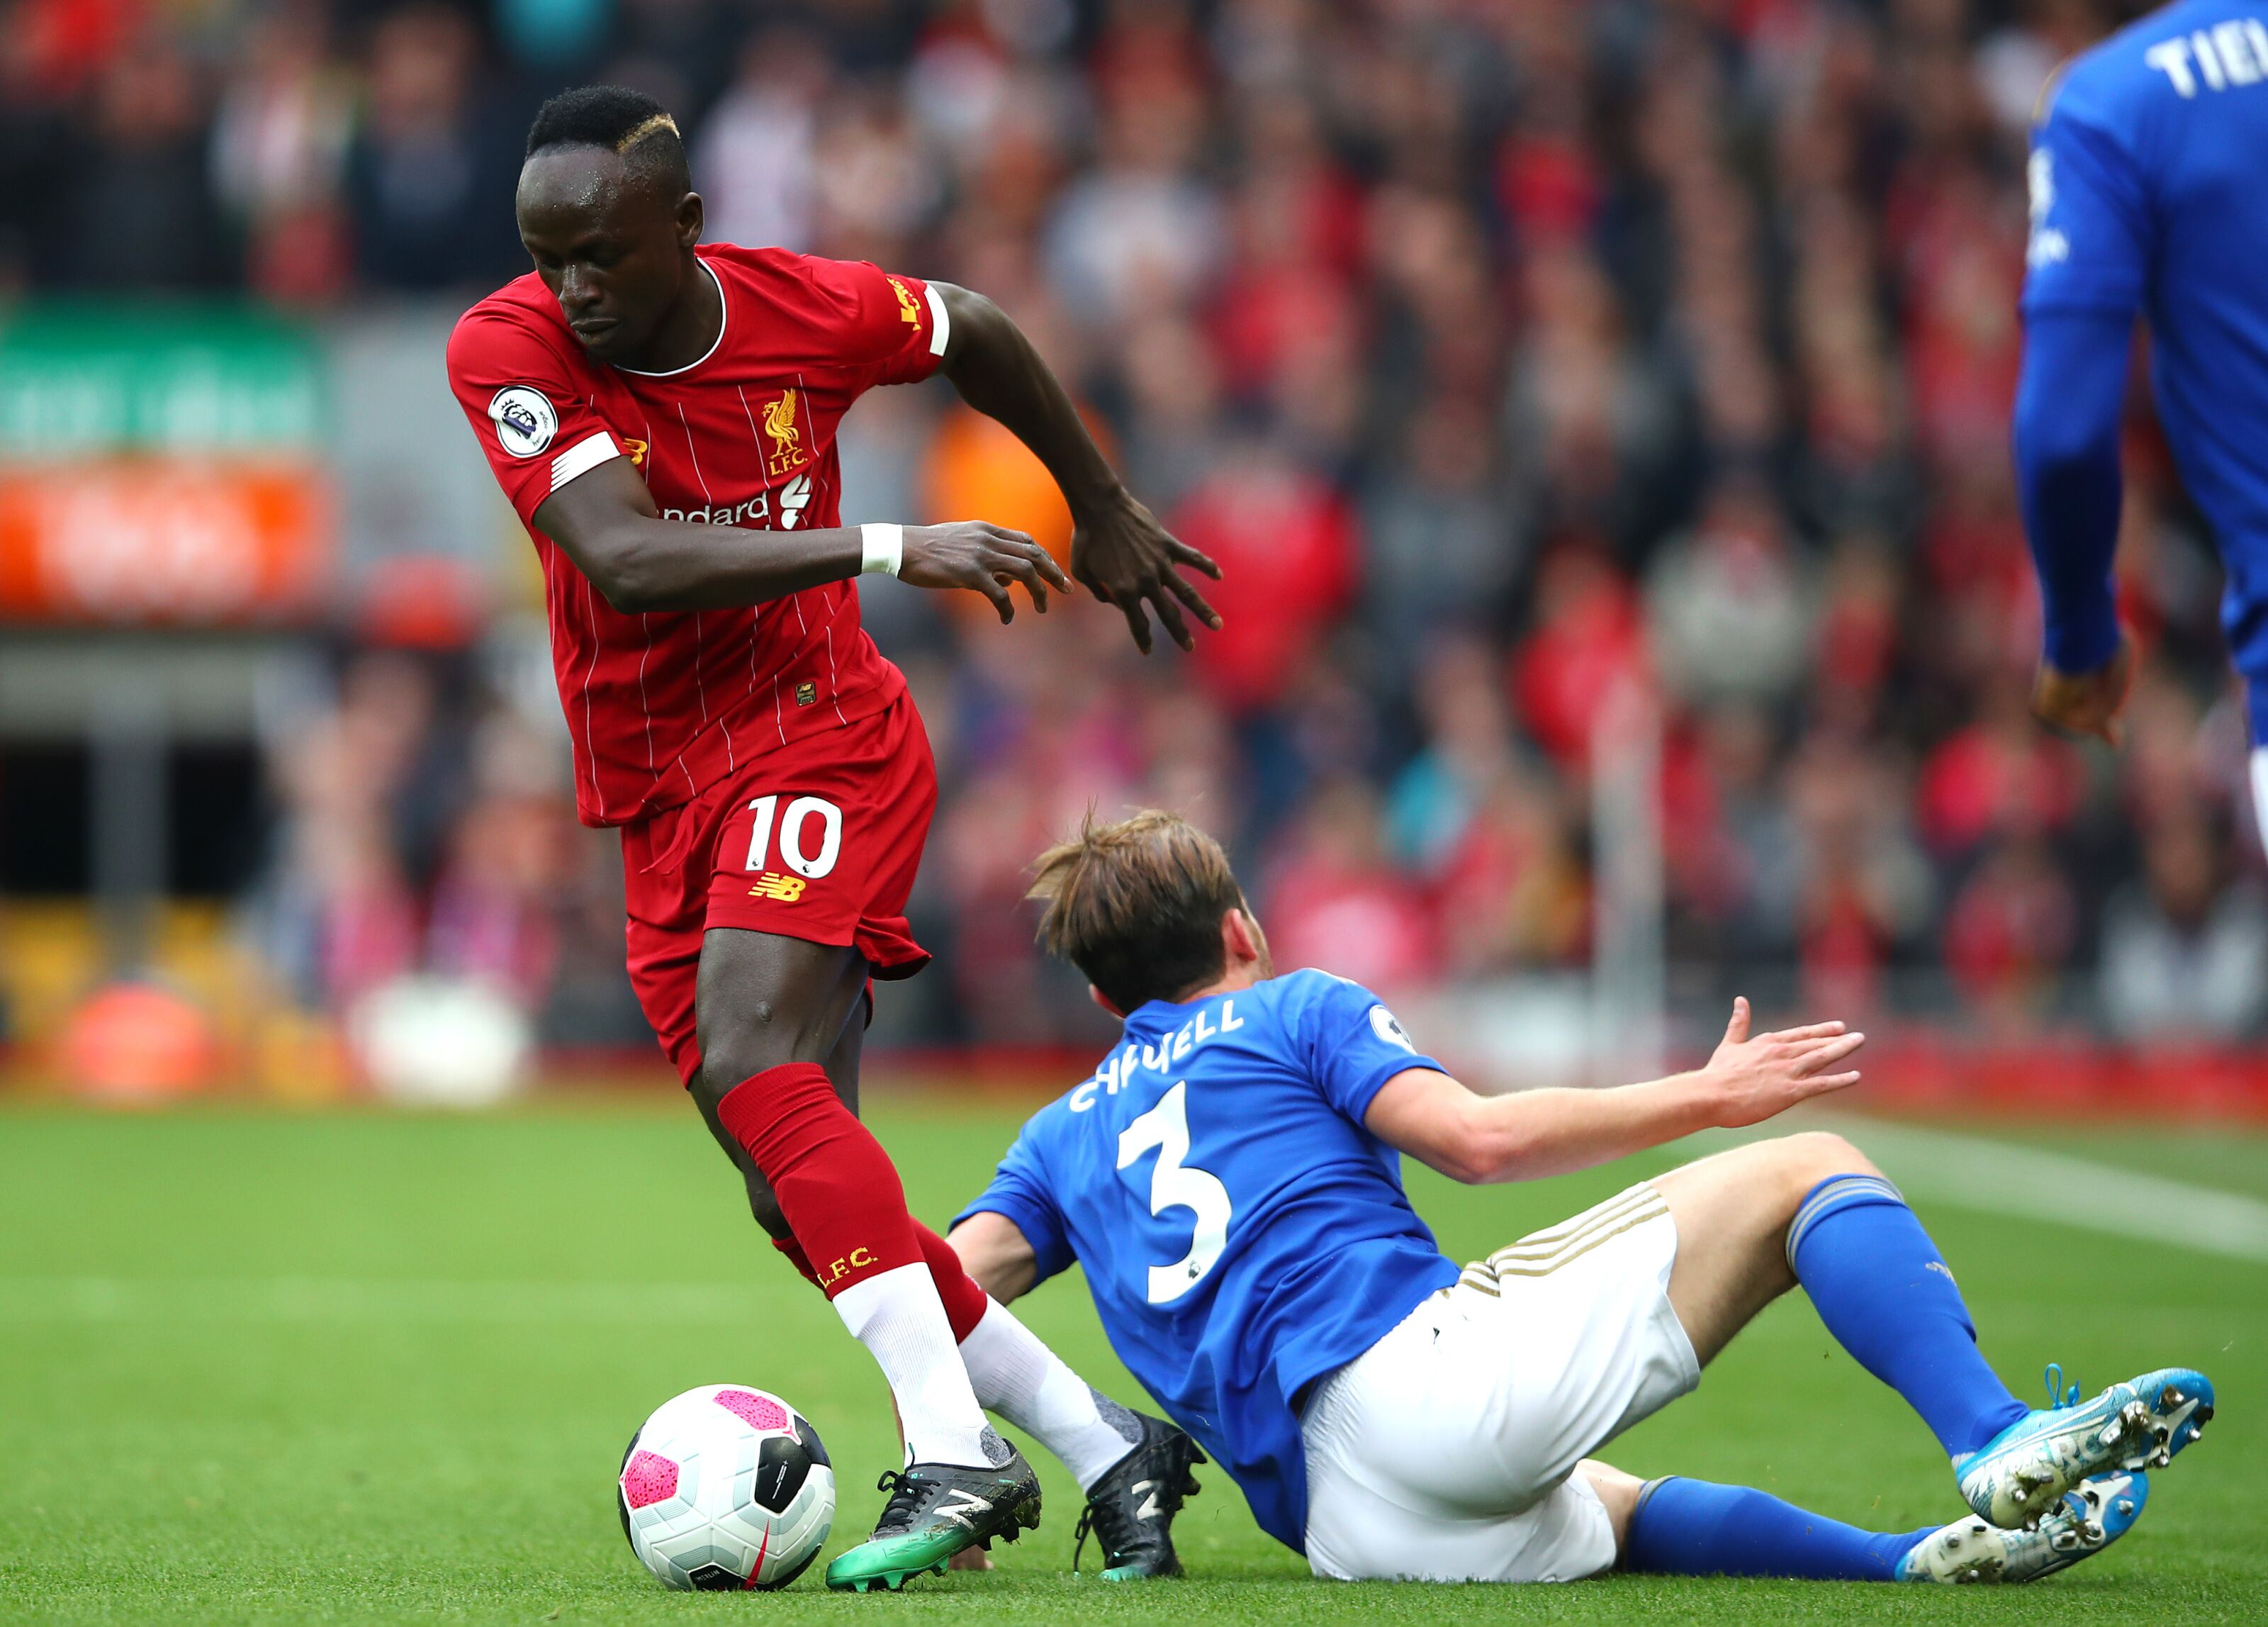 Liverpool 2-1 Leicester: Lol, 'member Sadio Mane before he evolved?